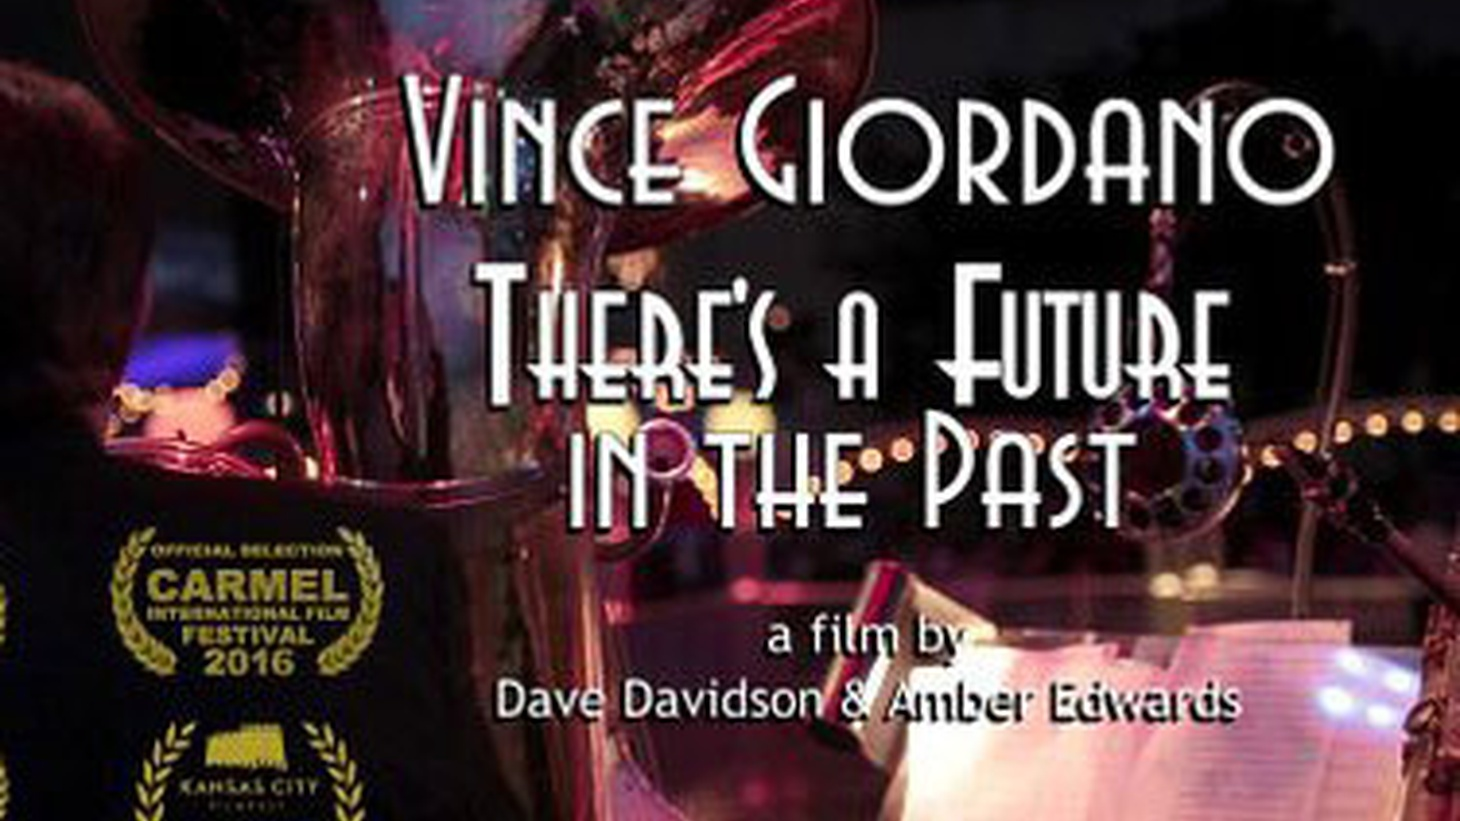 """Vince Giordano the subject of a new documentary, """"There's a Future in the Past,"""" sits in for an interview with Bo Leibowitz. Best known as the go-to guy for authentic '20's and '30's jazz in films and TV such as Cafe Society, The Aviator, Carol, and Boardwalk Empire."""